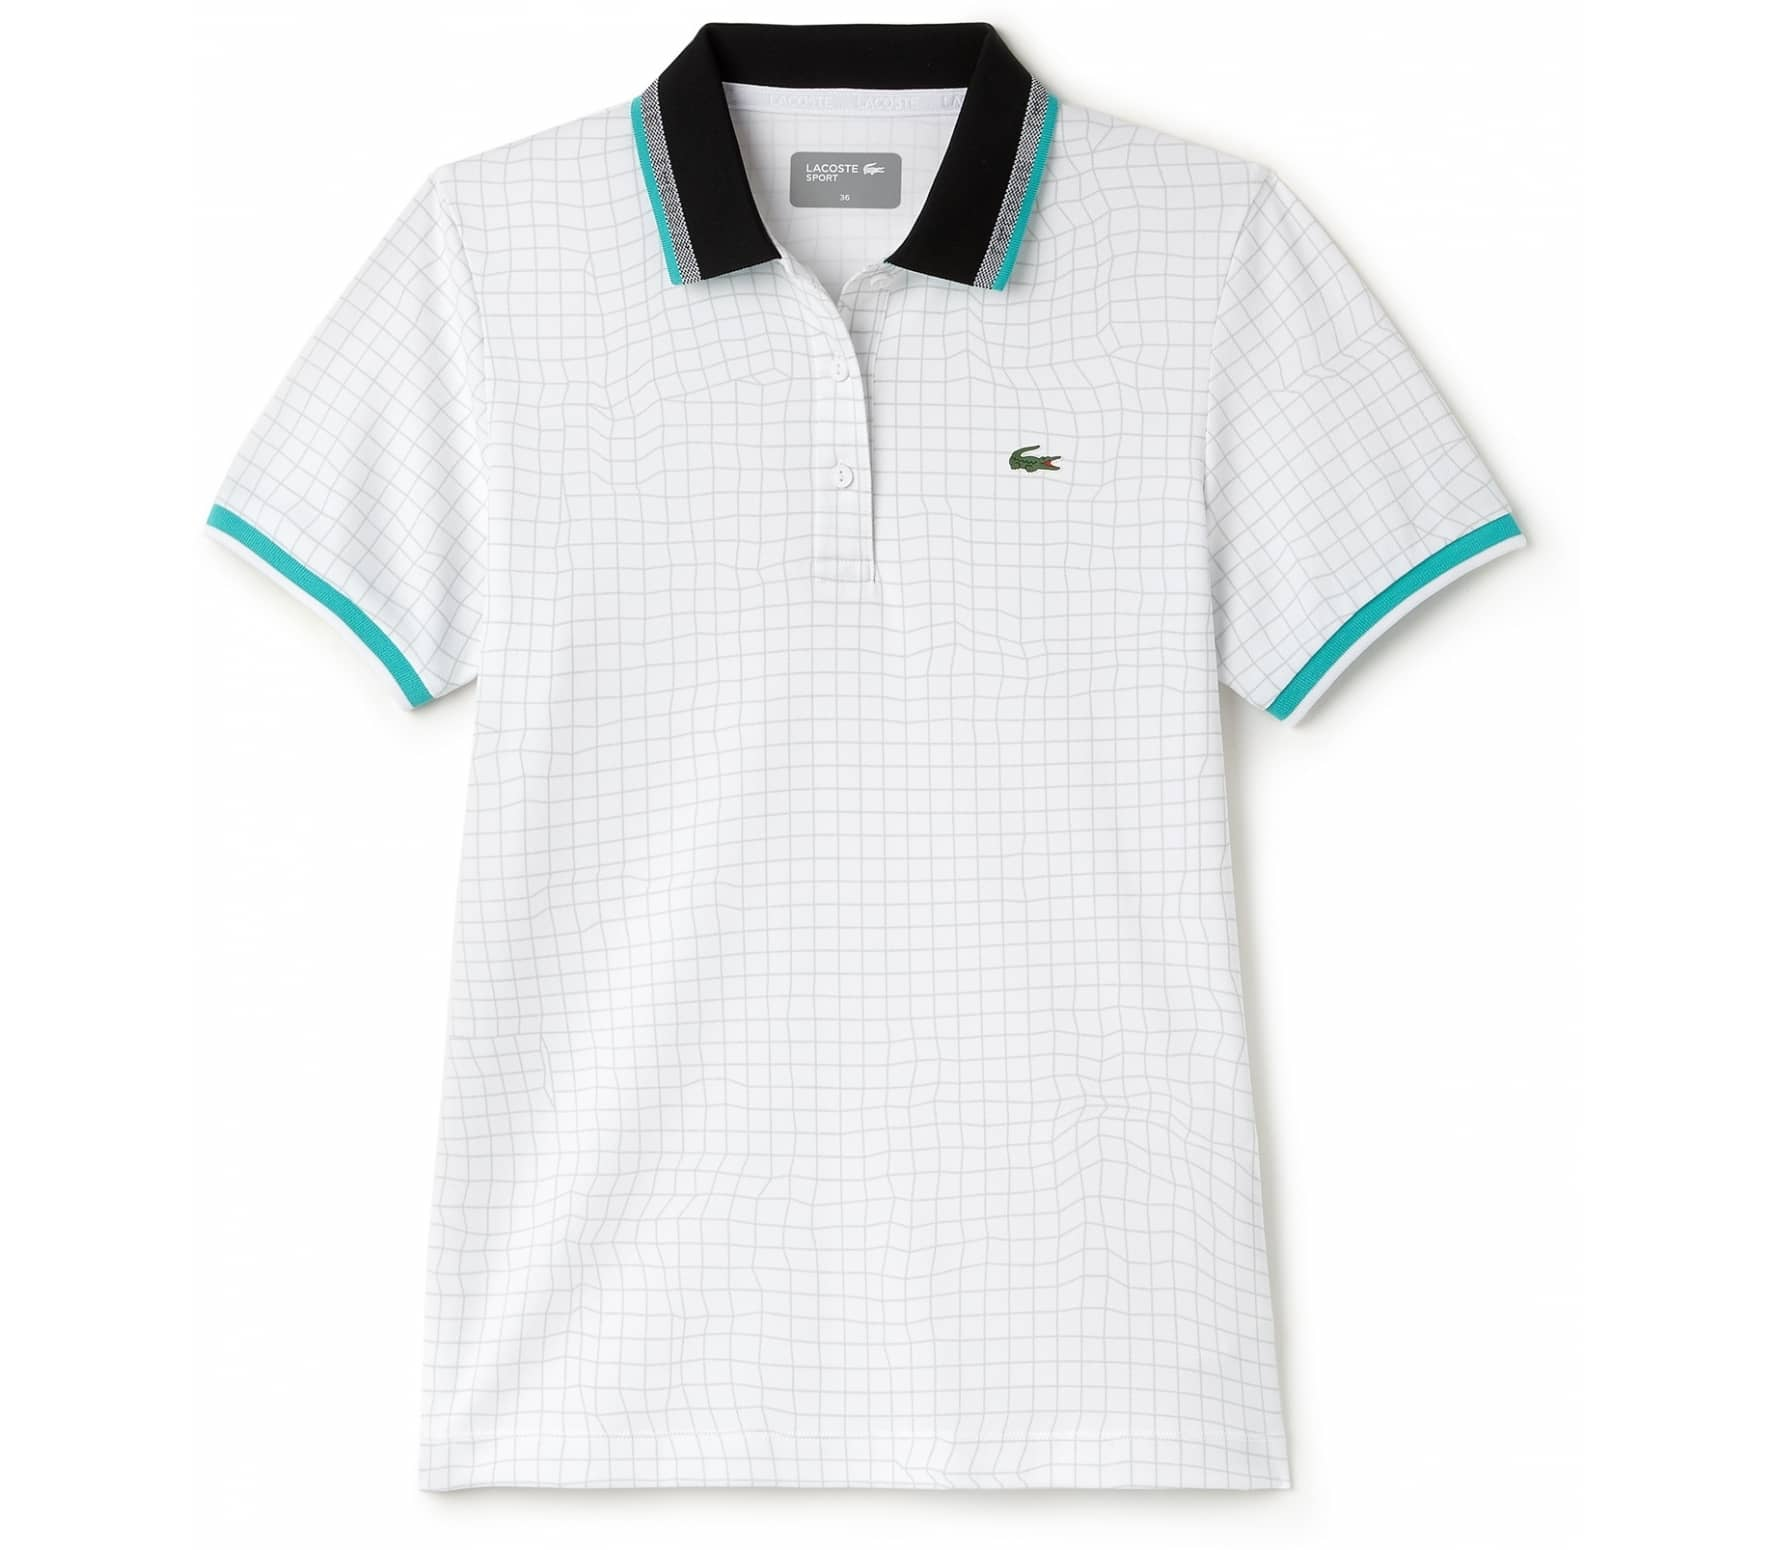 7ca042bb Lacoste - Sleeved Ribbed Collar women's tennis polo top (white/green ...